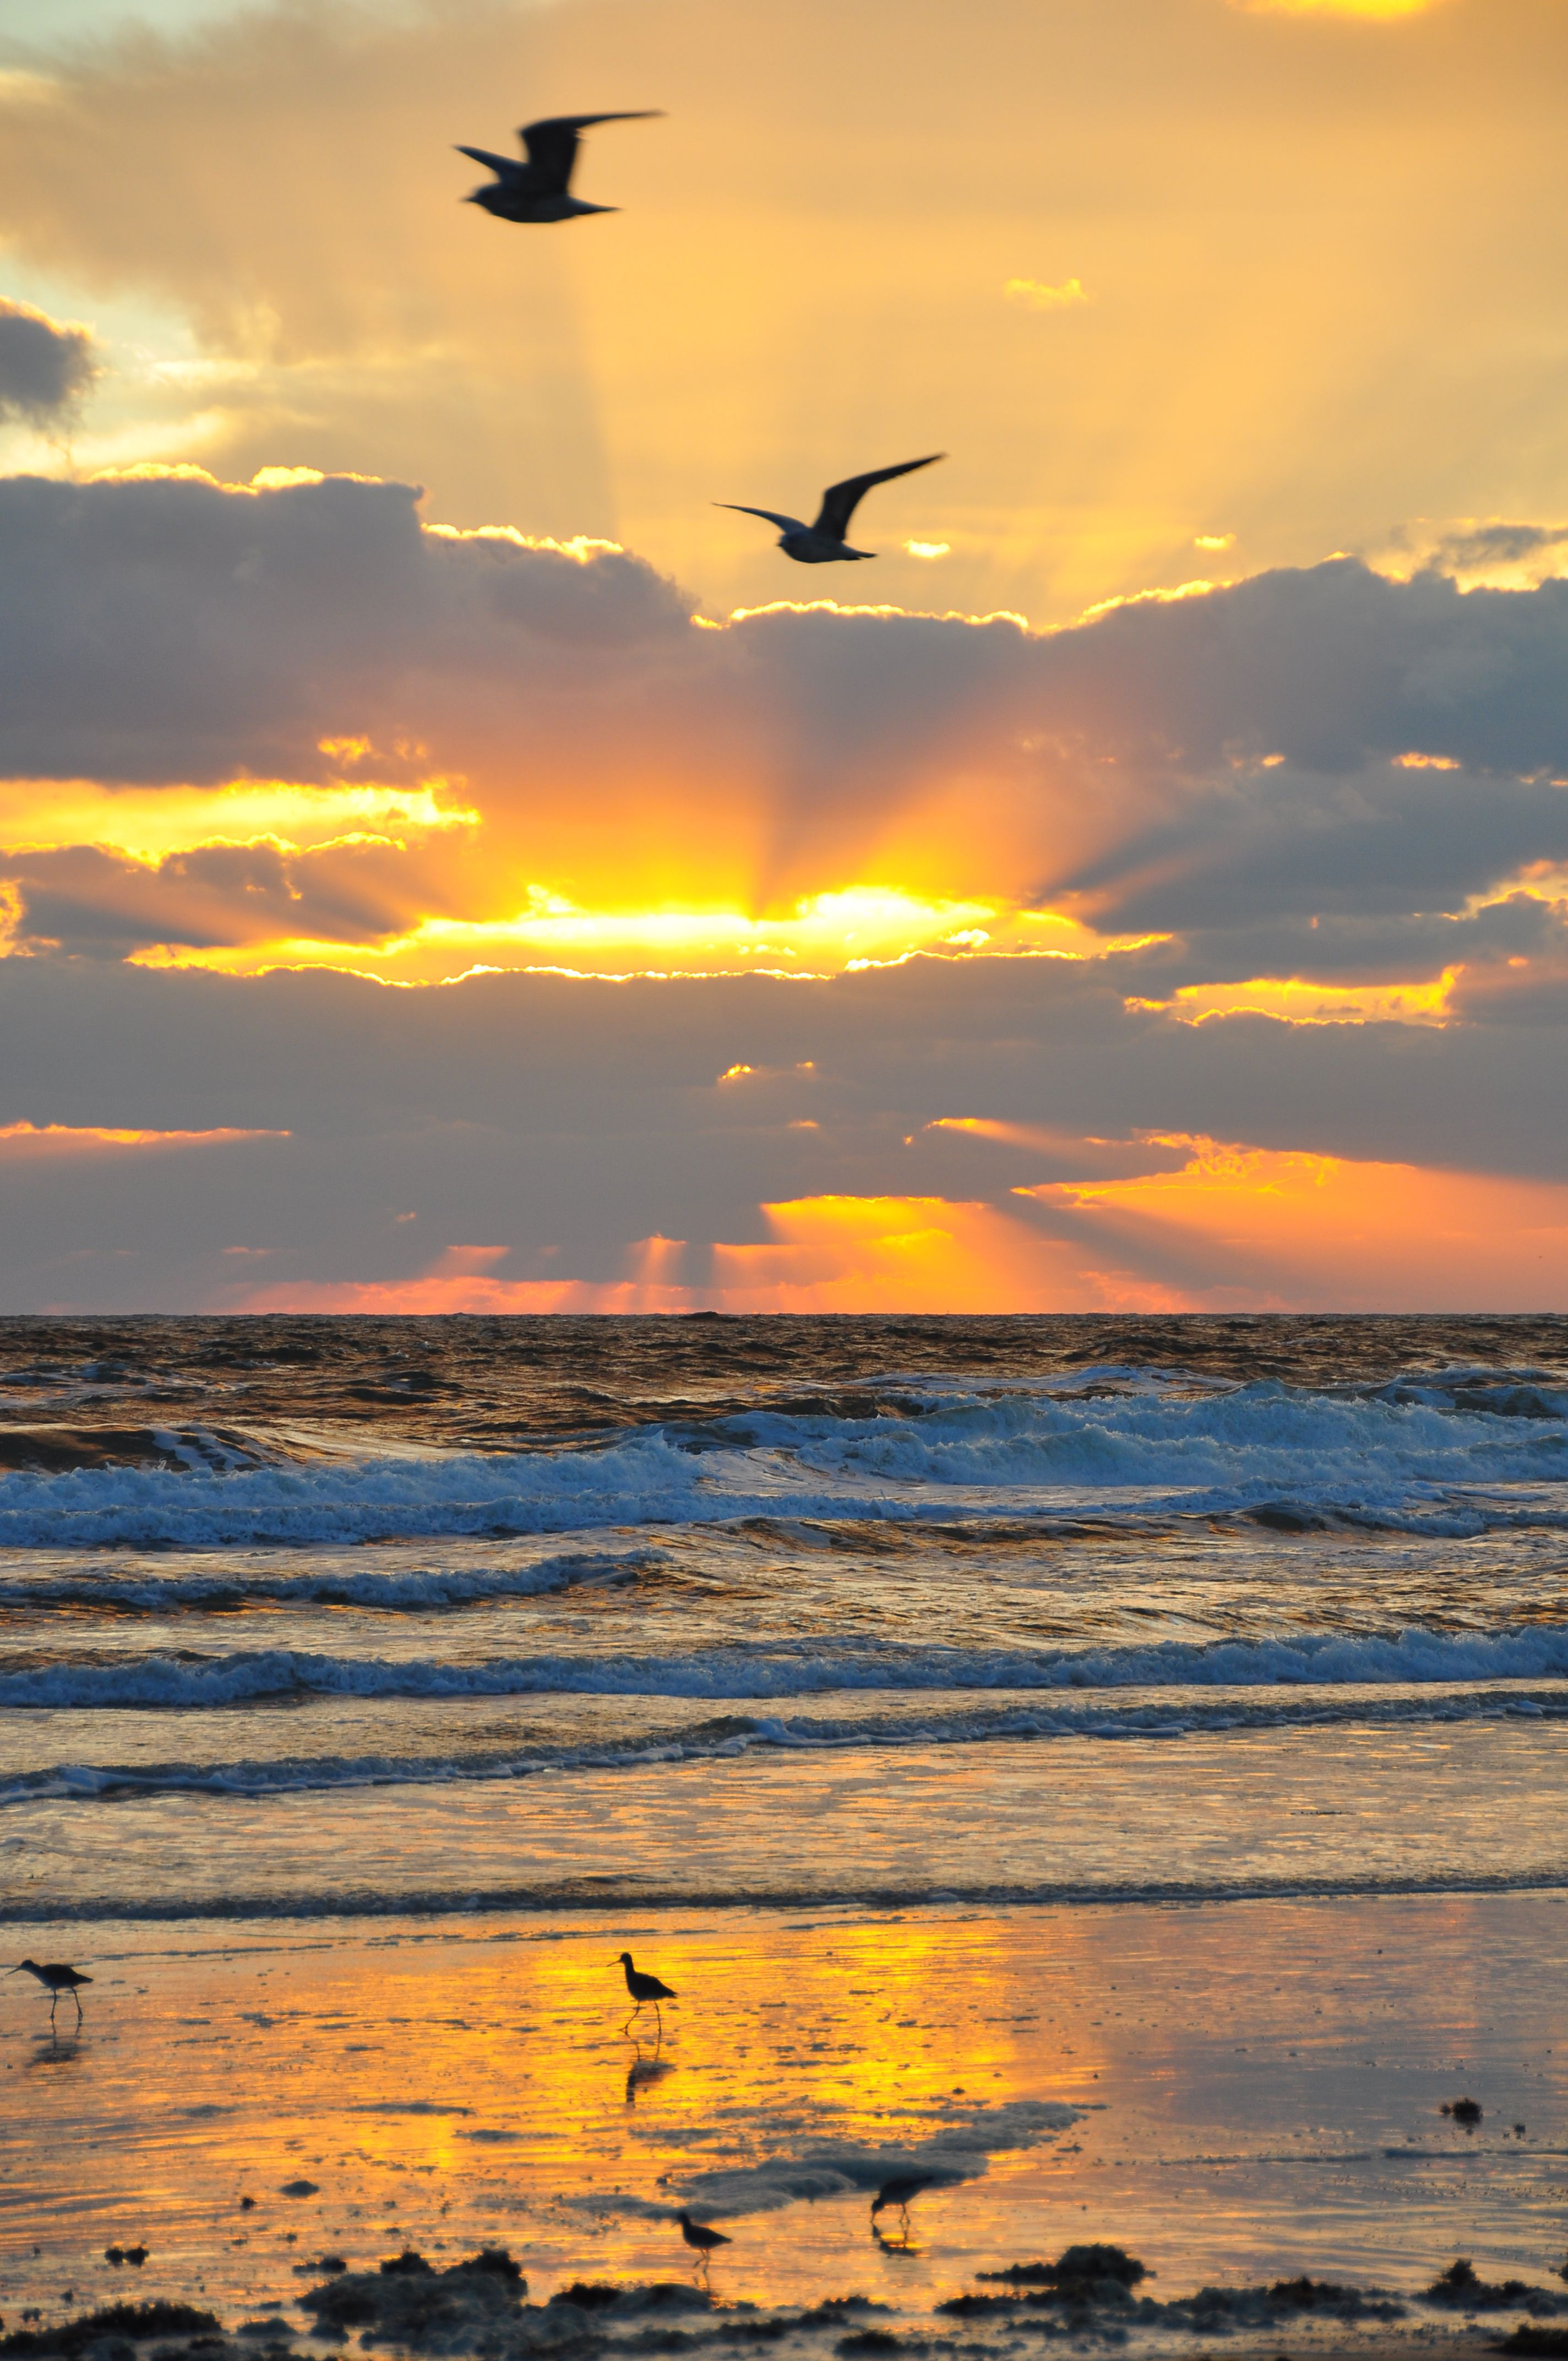 beautiful early morning beach sunrise scenery in florida with